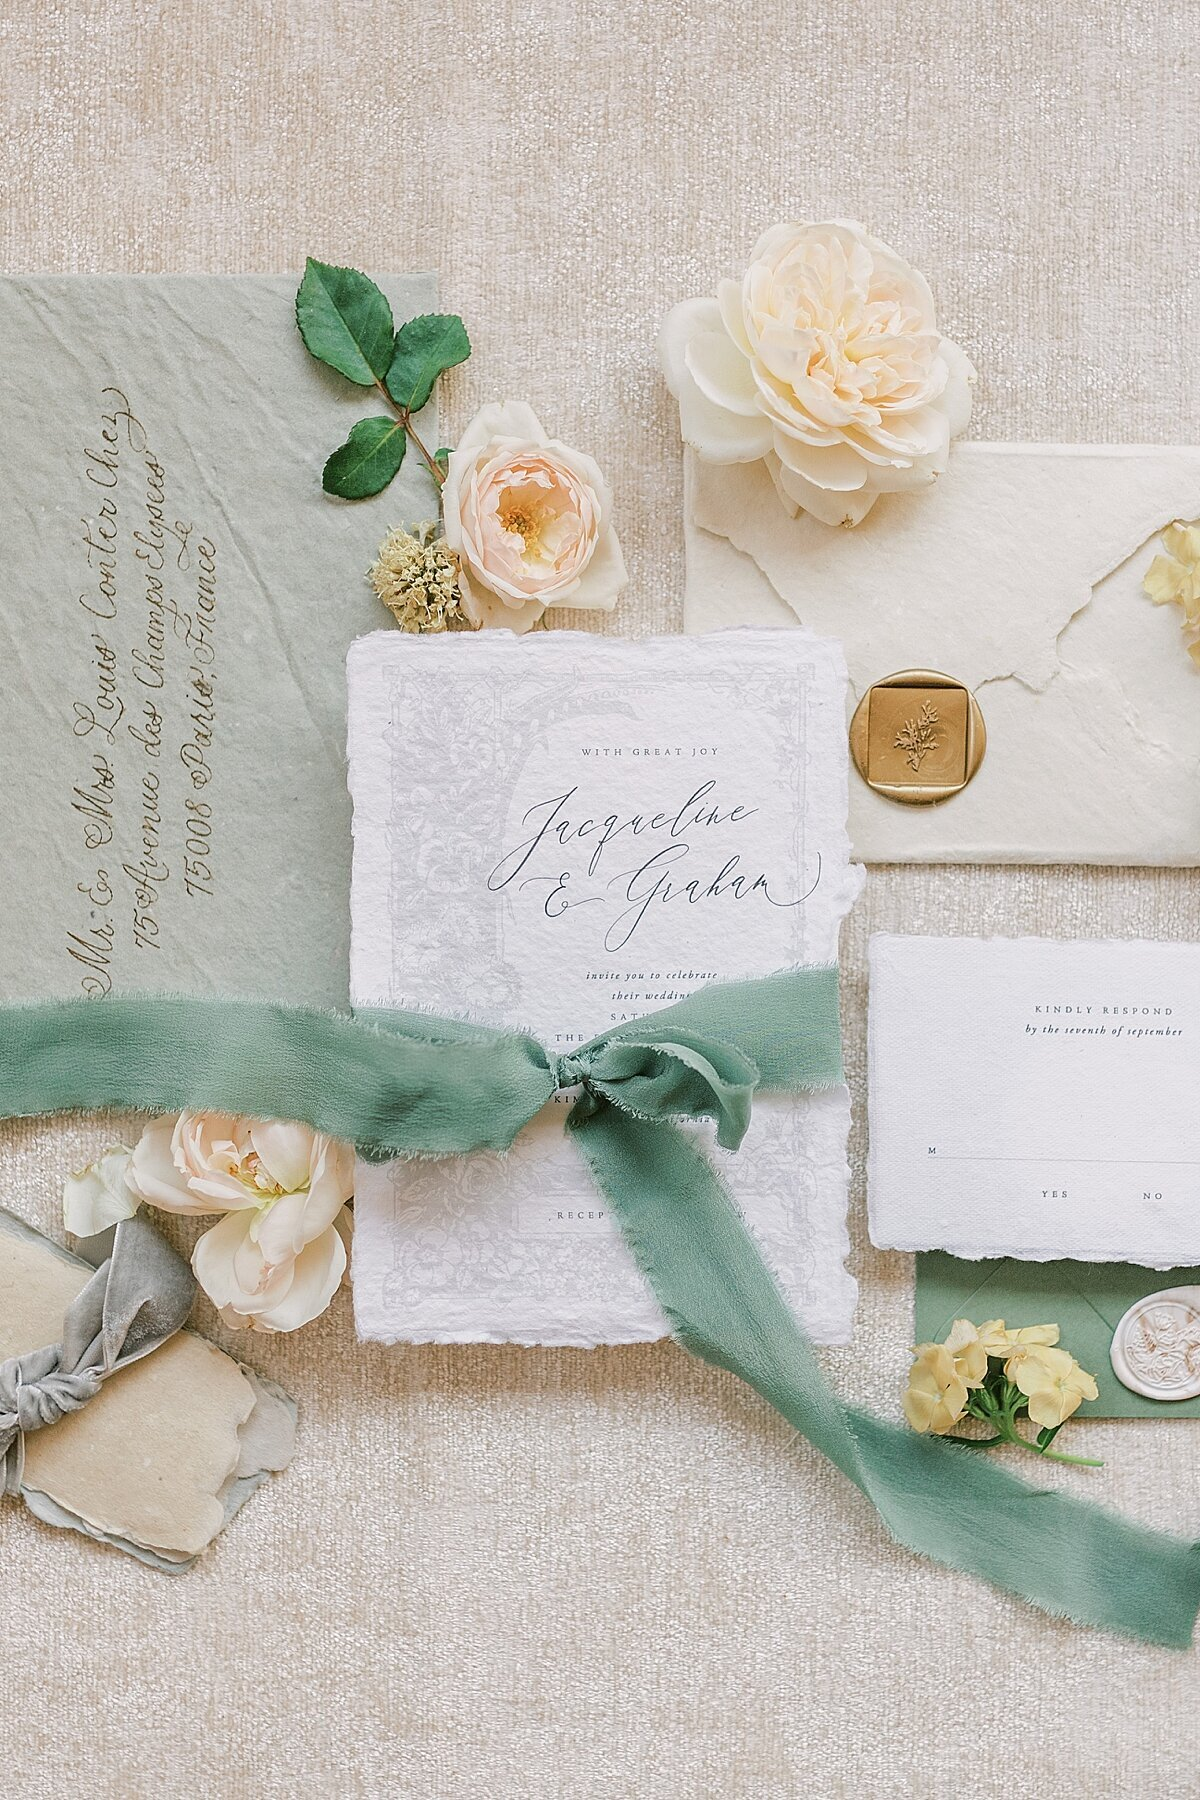 Wedding invitation flatlay with peach florals and green ribbon